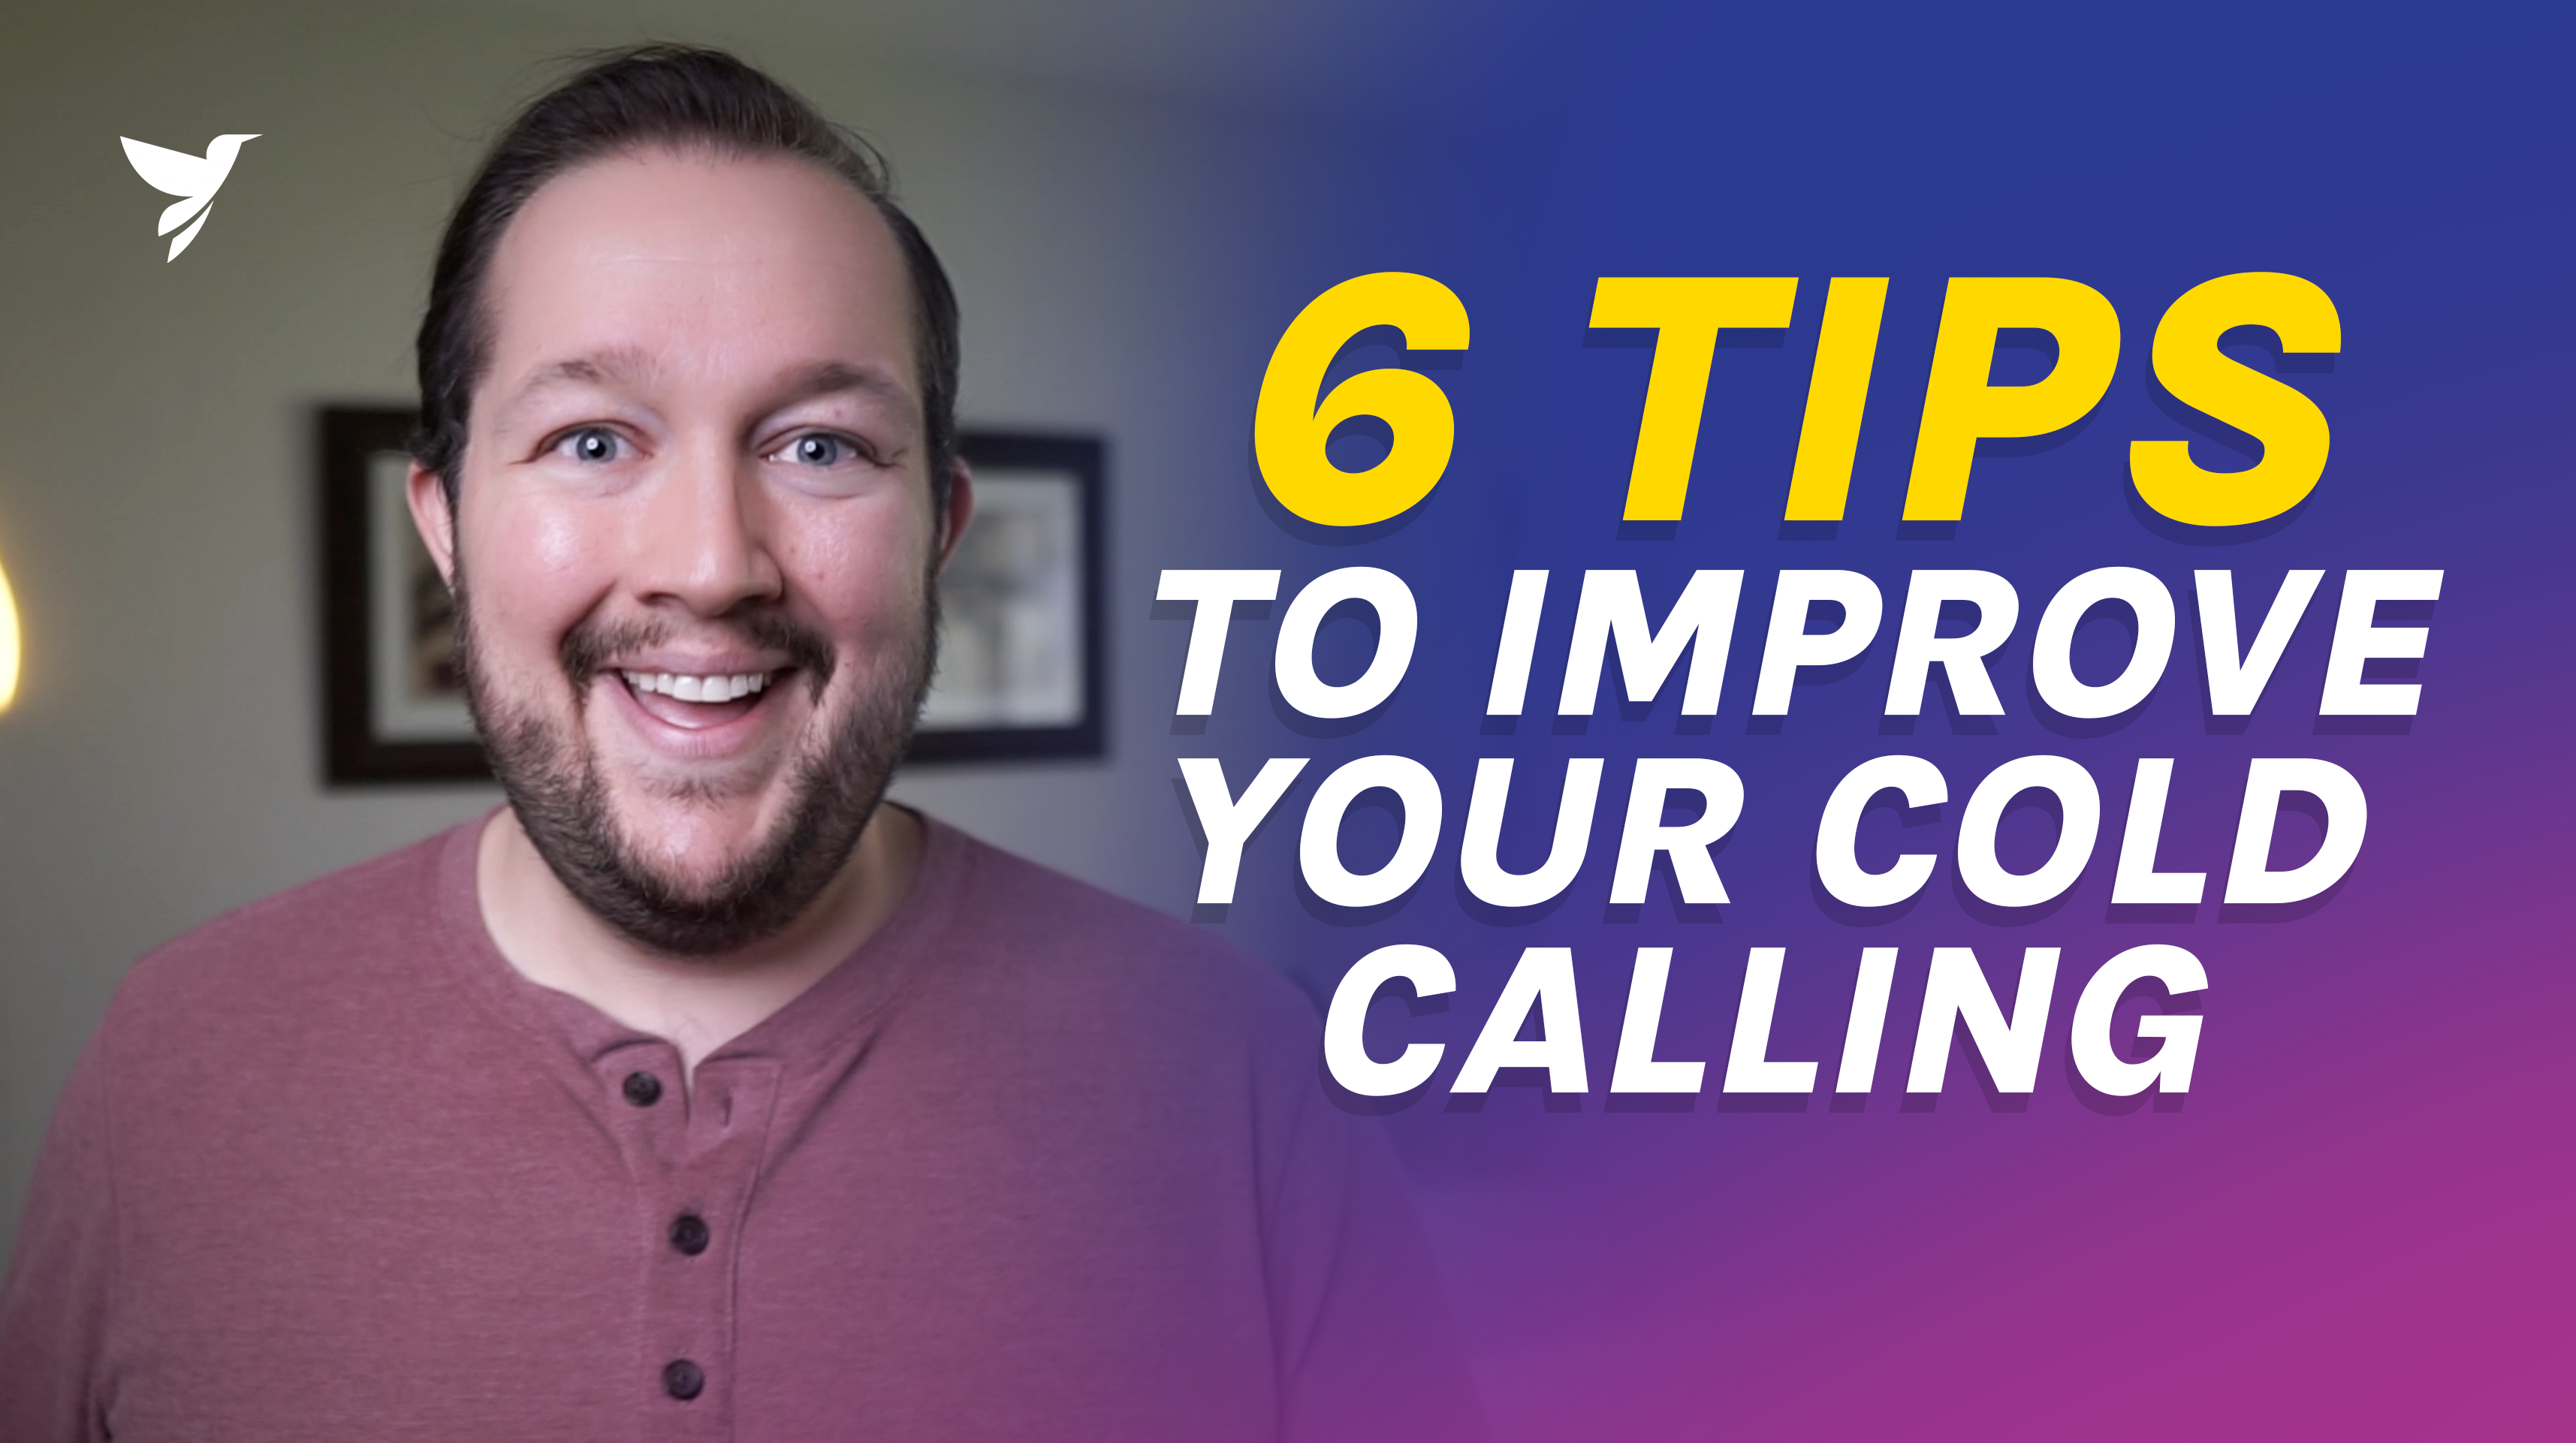 6 tips to improve cold calling